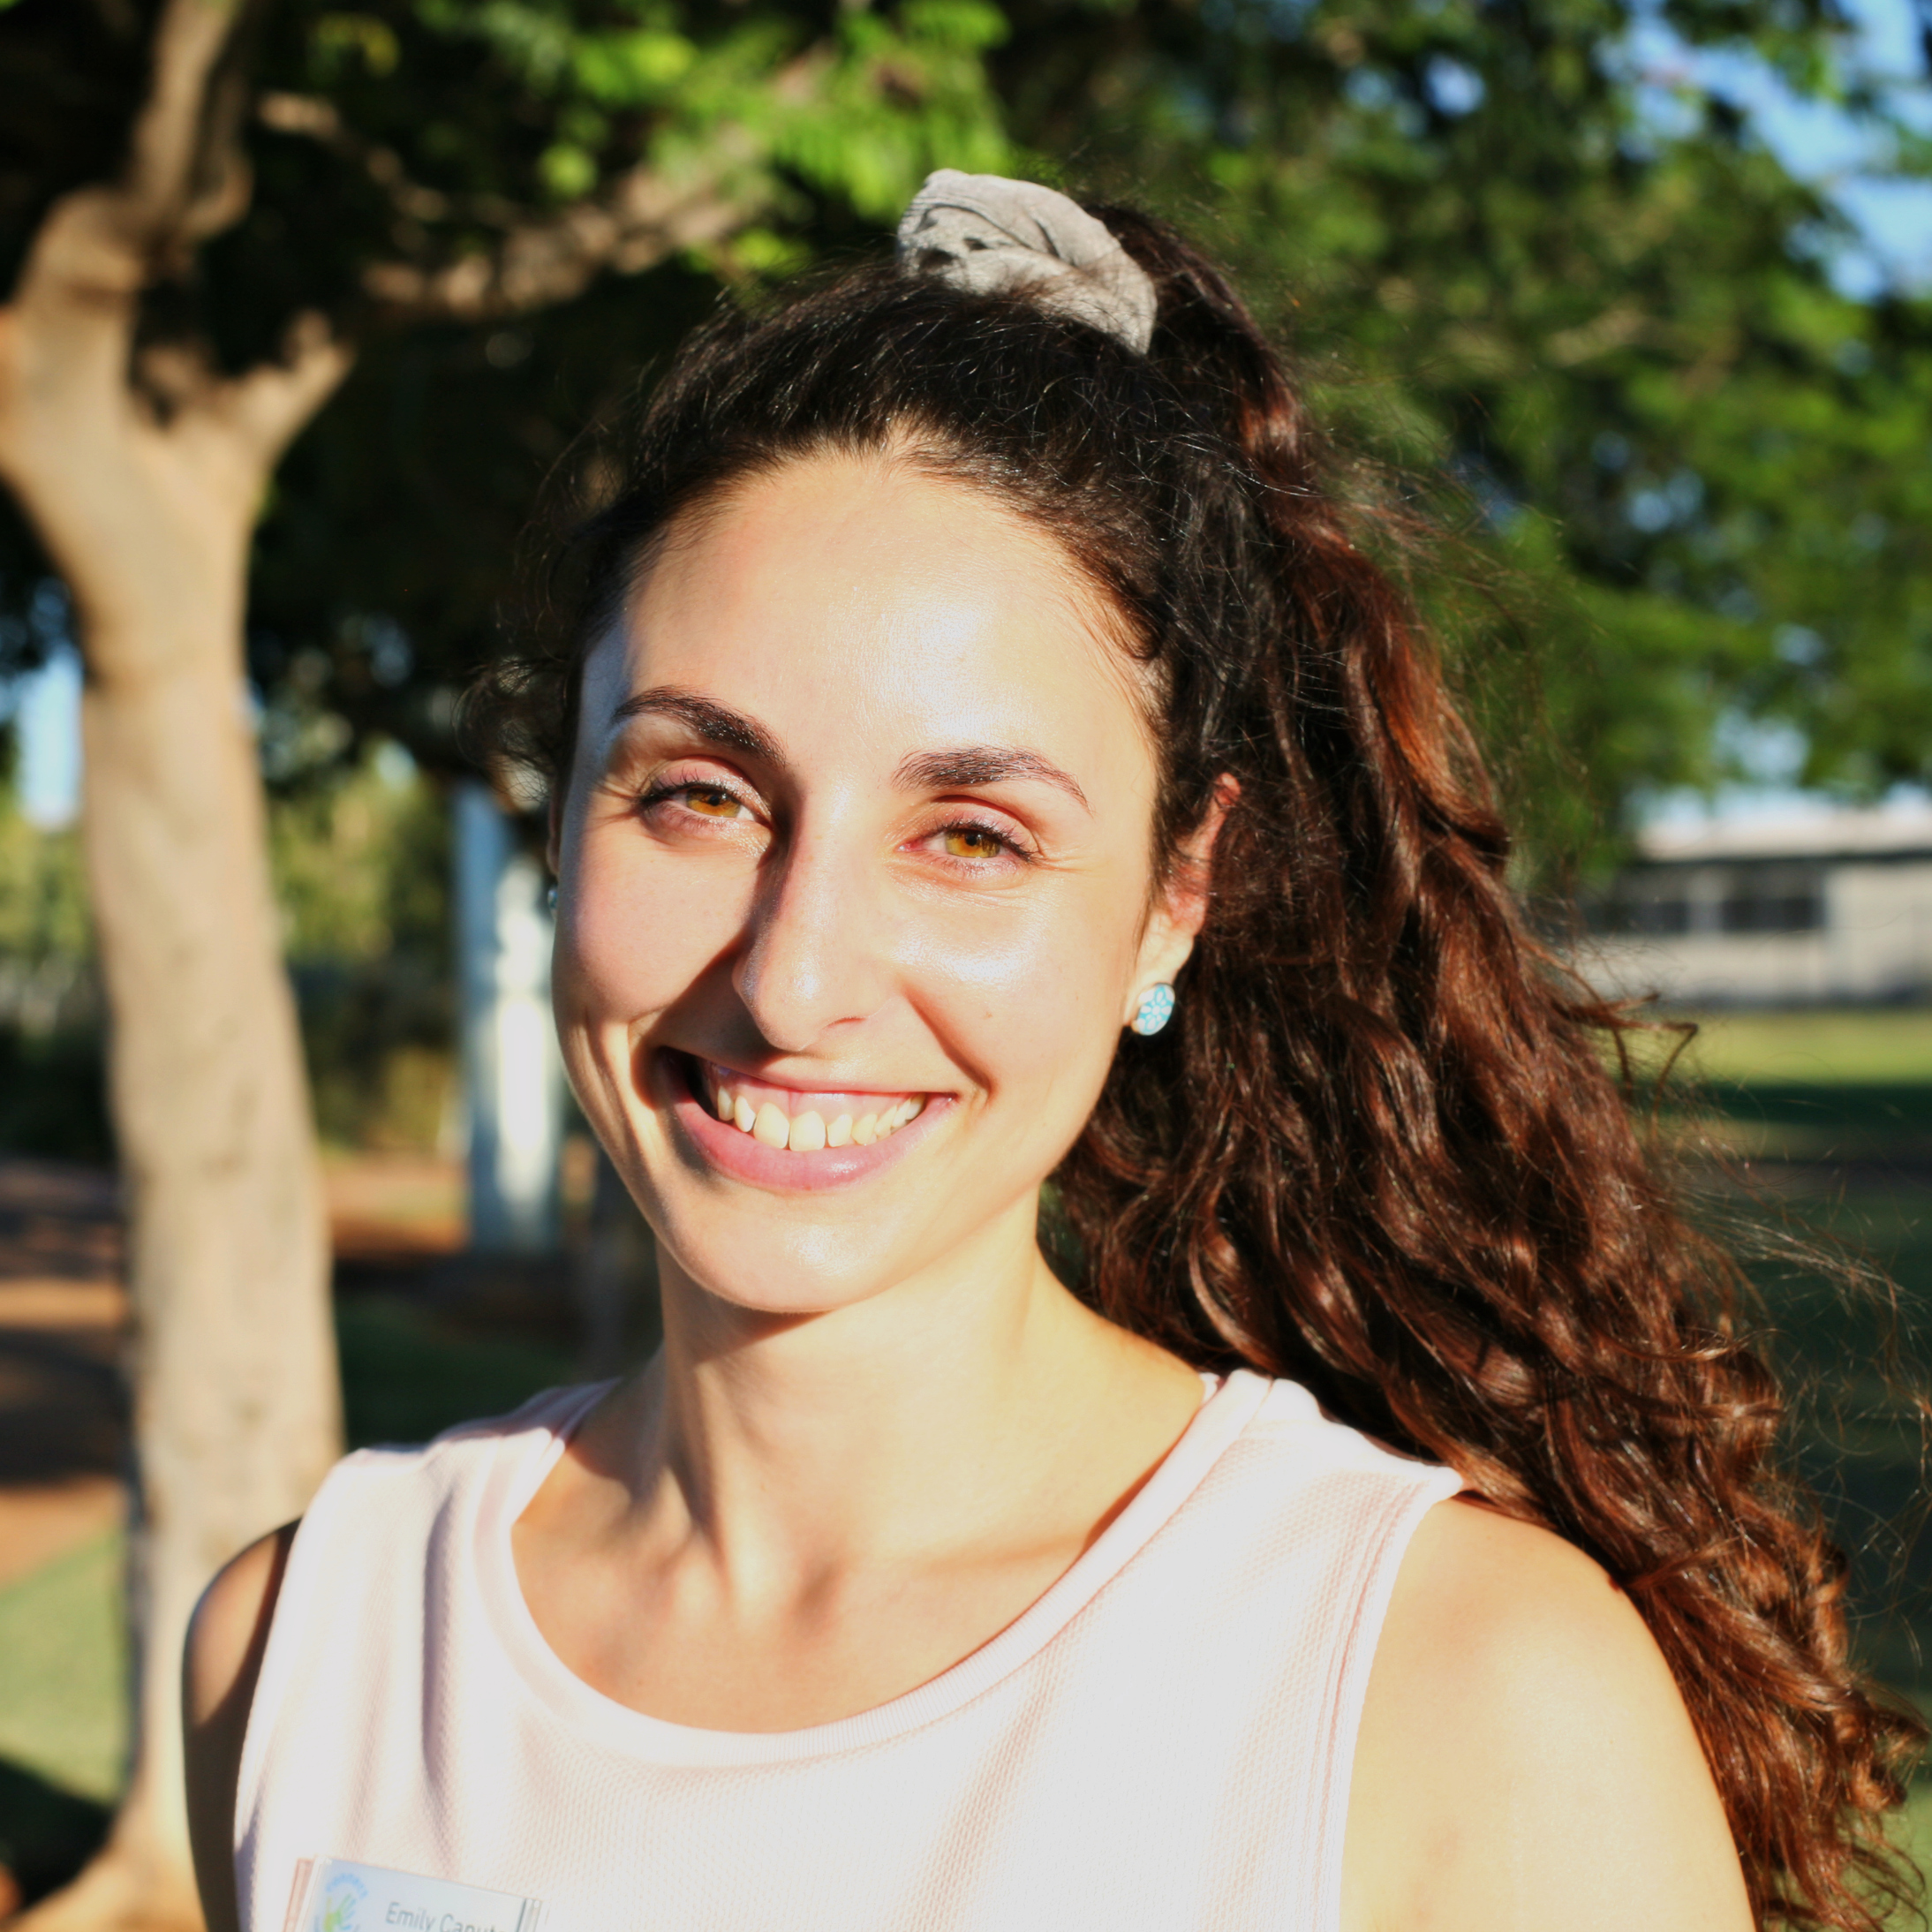 Emily Caputo    Physiotherapist   Emily graduated from Physiotherapy at Curtin University in 2015 and joined the Connect team at the beginning of 2019. She has completed an APA Level 1 Paediatric Physiotherapy professional course and continues to develop her skills with any opportunity that arises.  Emily loves working with both children and families to help achieve their goals by providing a fun and relaxing environment. She uses a strength based approach incorporating your child's interests to help improve development and movement difficulties to enable them to participate in everyday activities, like playing and learning. Emily works closely with the other health professionals in the team to optimize your child's program. With the help of our allied health assistant Chelsea, Emily has created a social sports group which they both run twice a week.  She can be a big kid herself with a huge love for everything Disney, video games and sport. Emily loves to be in the Pilbara outdoors and is a member of multiple sporting clubs in Karratha.